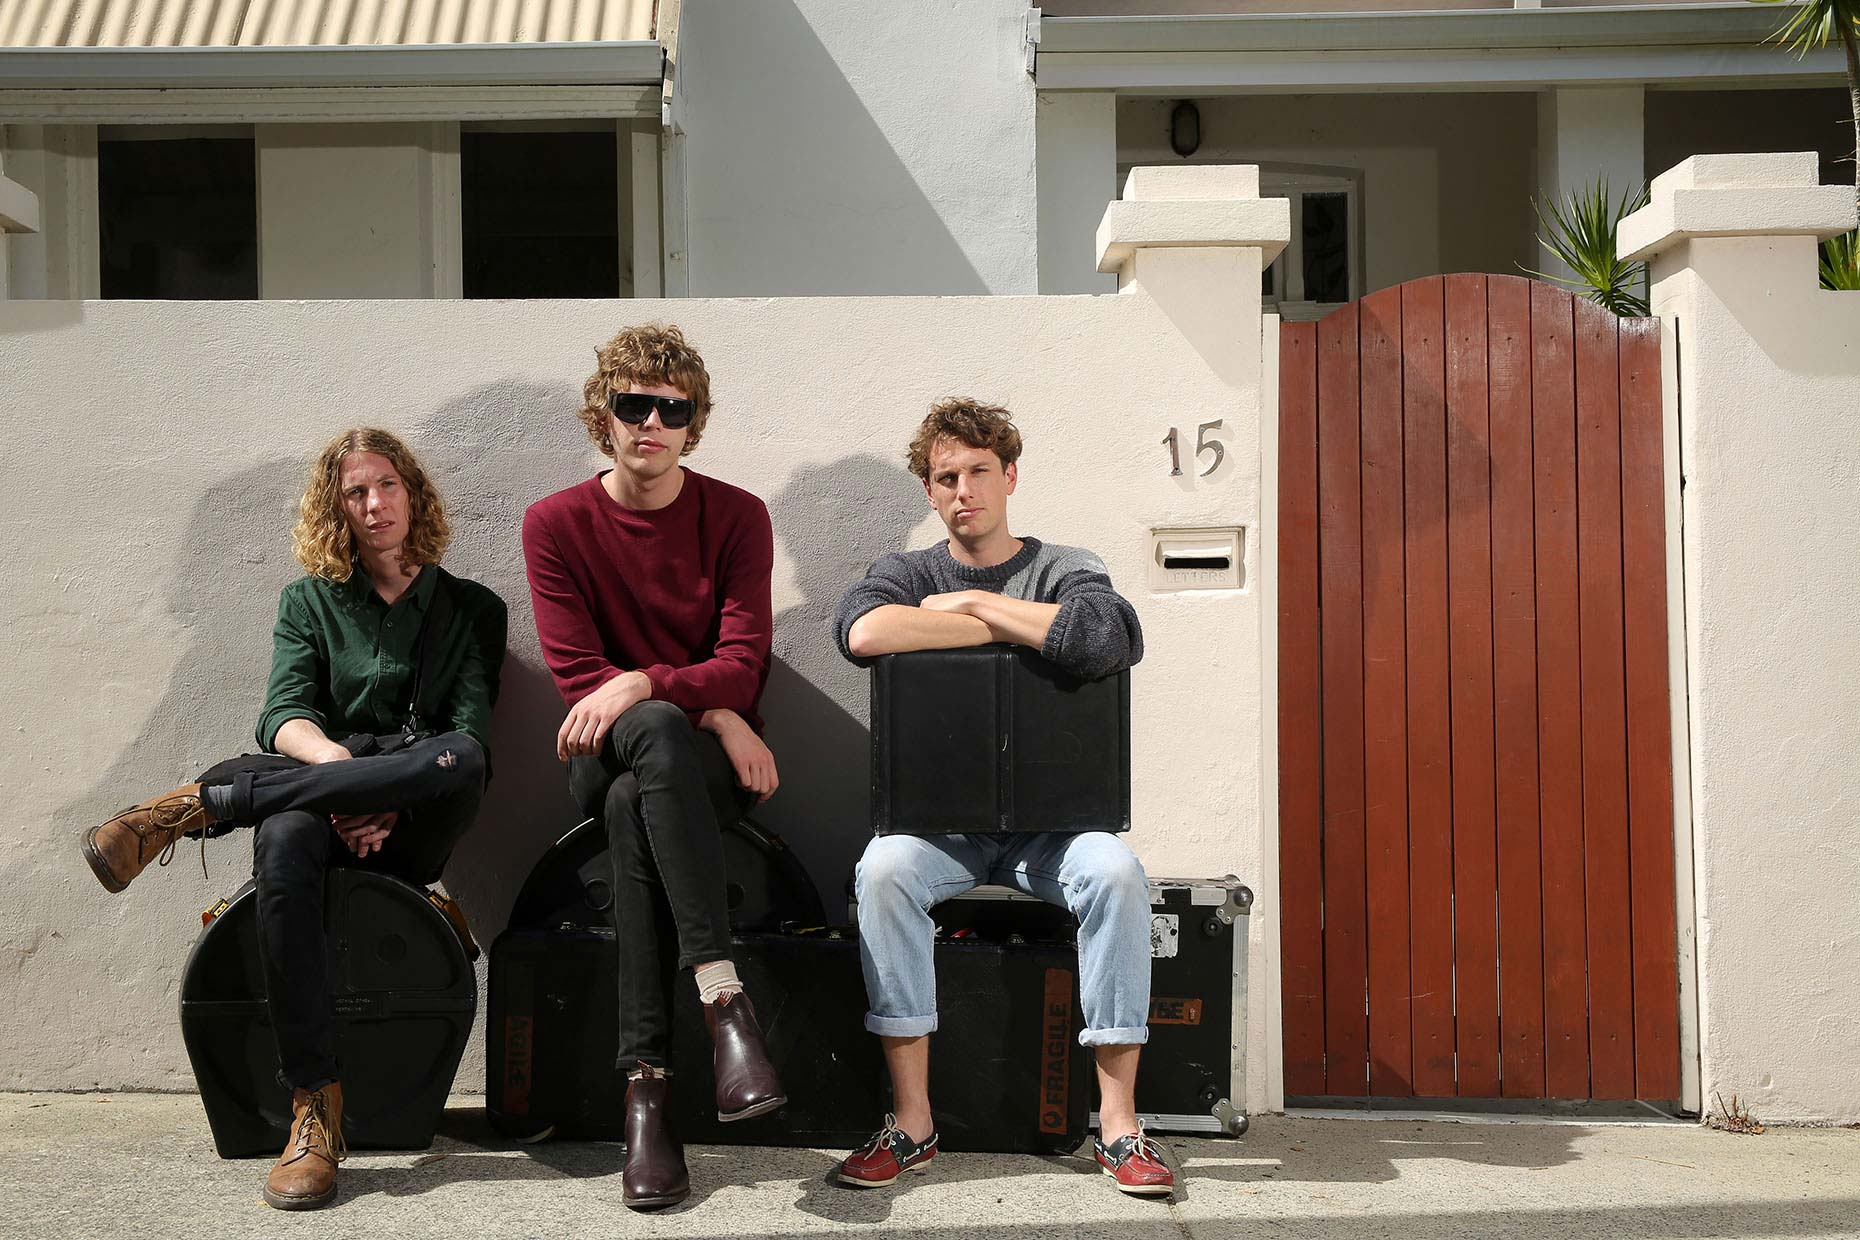 Methyl Ethel - Australian indie pop band